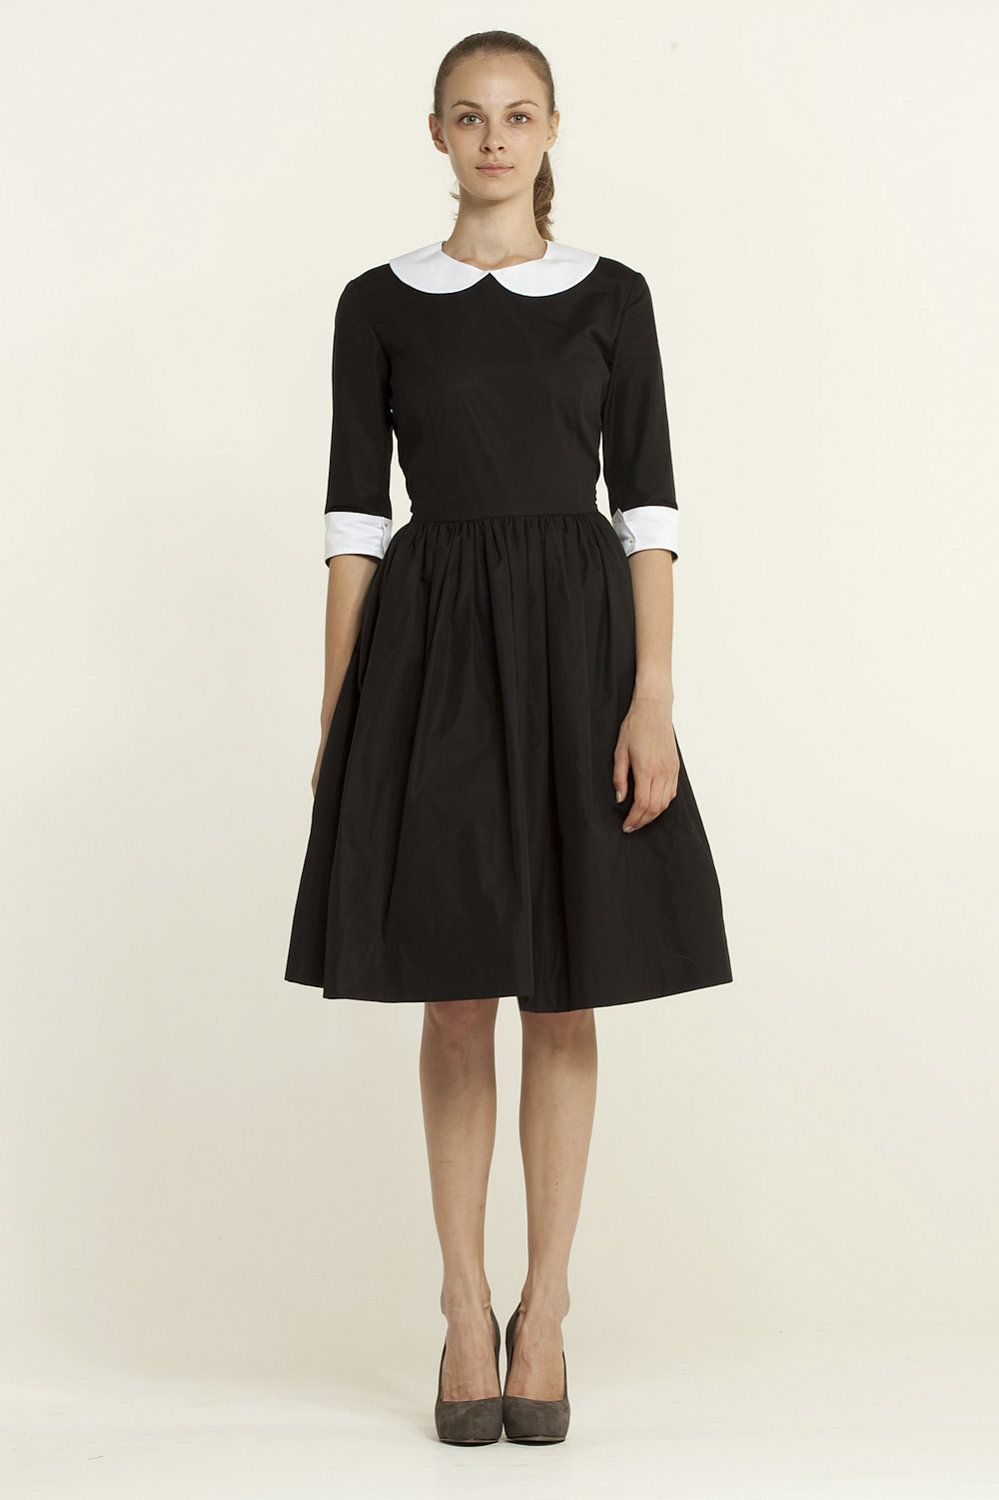 Custom made black cotton dress with two detachable collars and cuffs